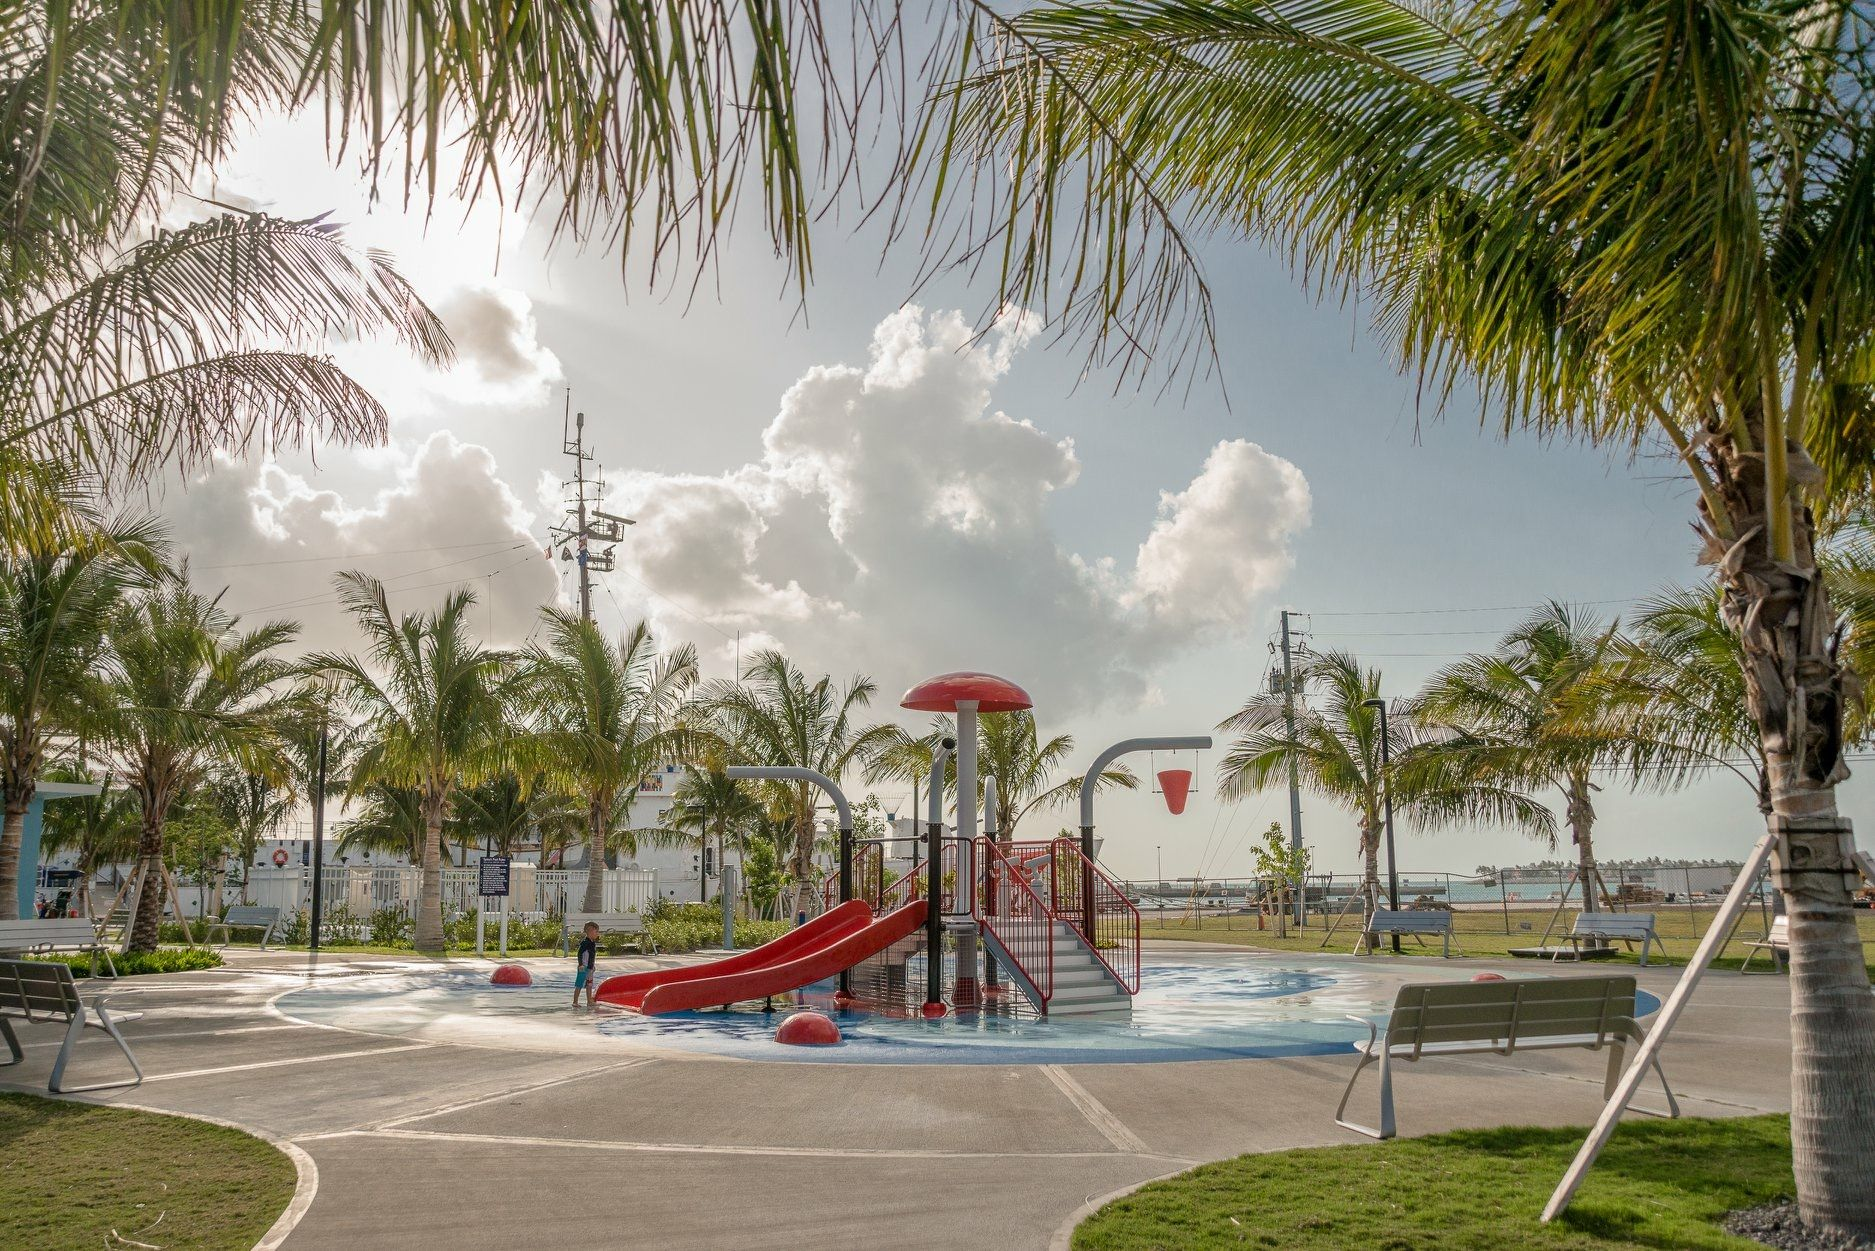 Playground slide in City Park surrounded by Palm trees